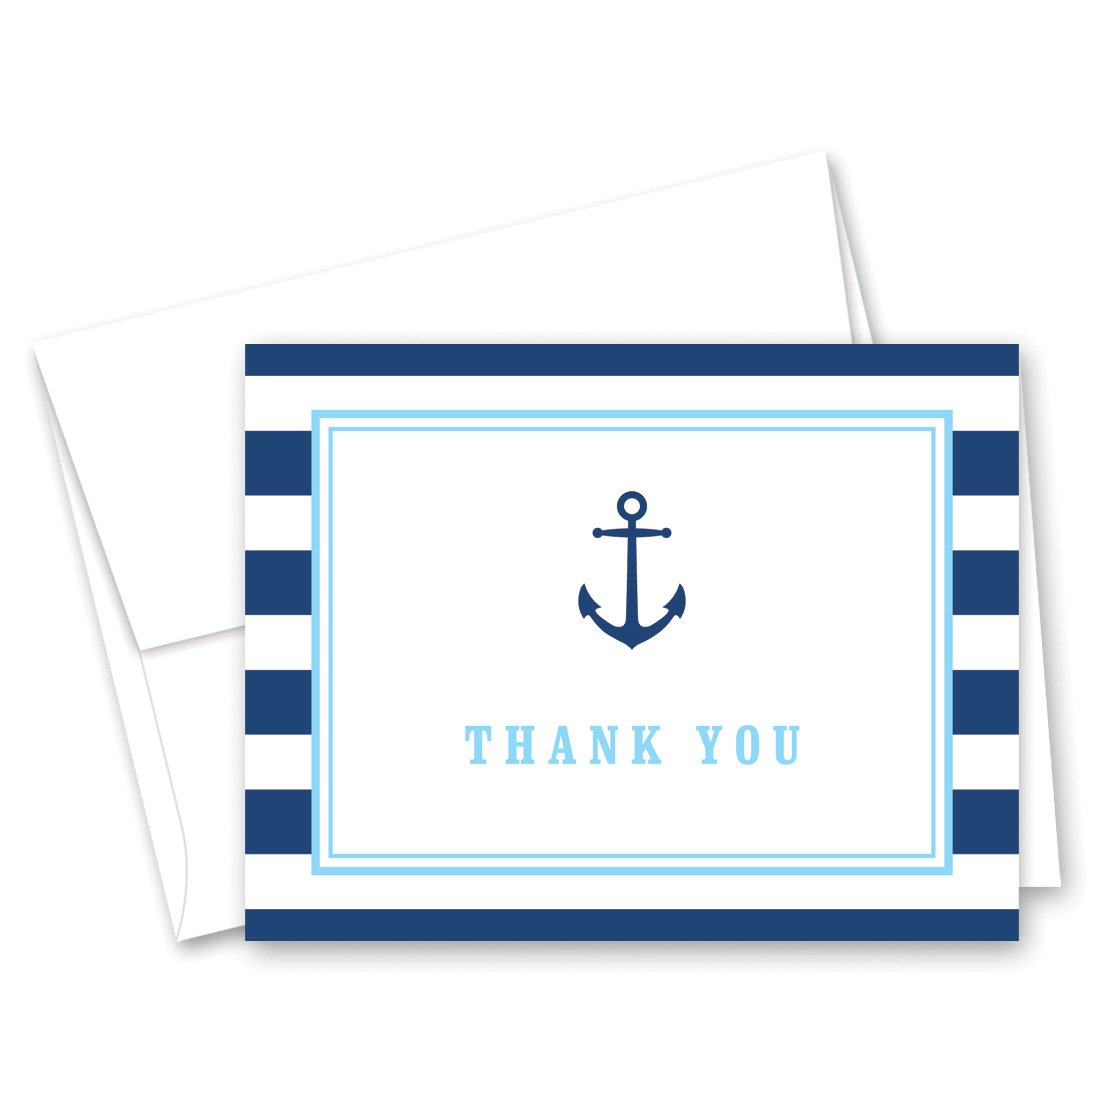 50 Cnt Navy Stripes Blue Border Nautical Boy Baby Shower Thank You Cards by MyExpression LLC (Image #1)